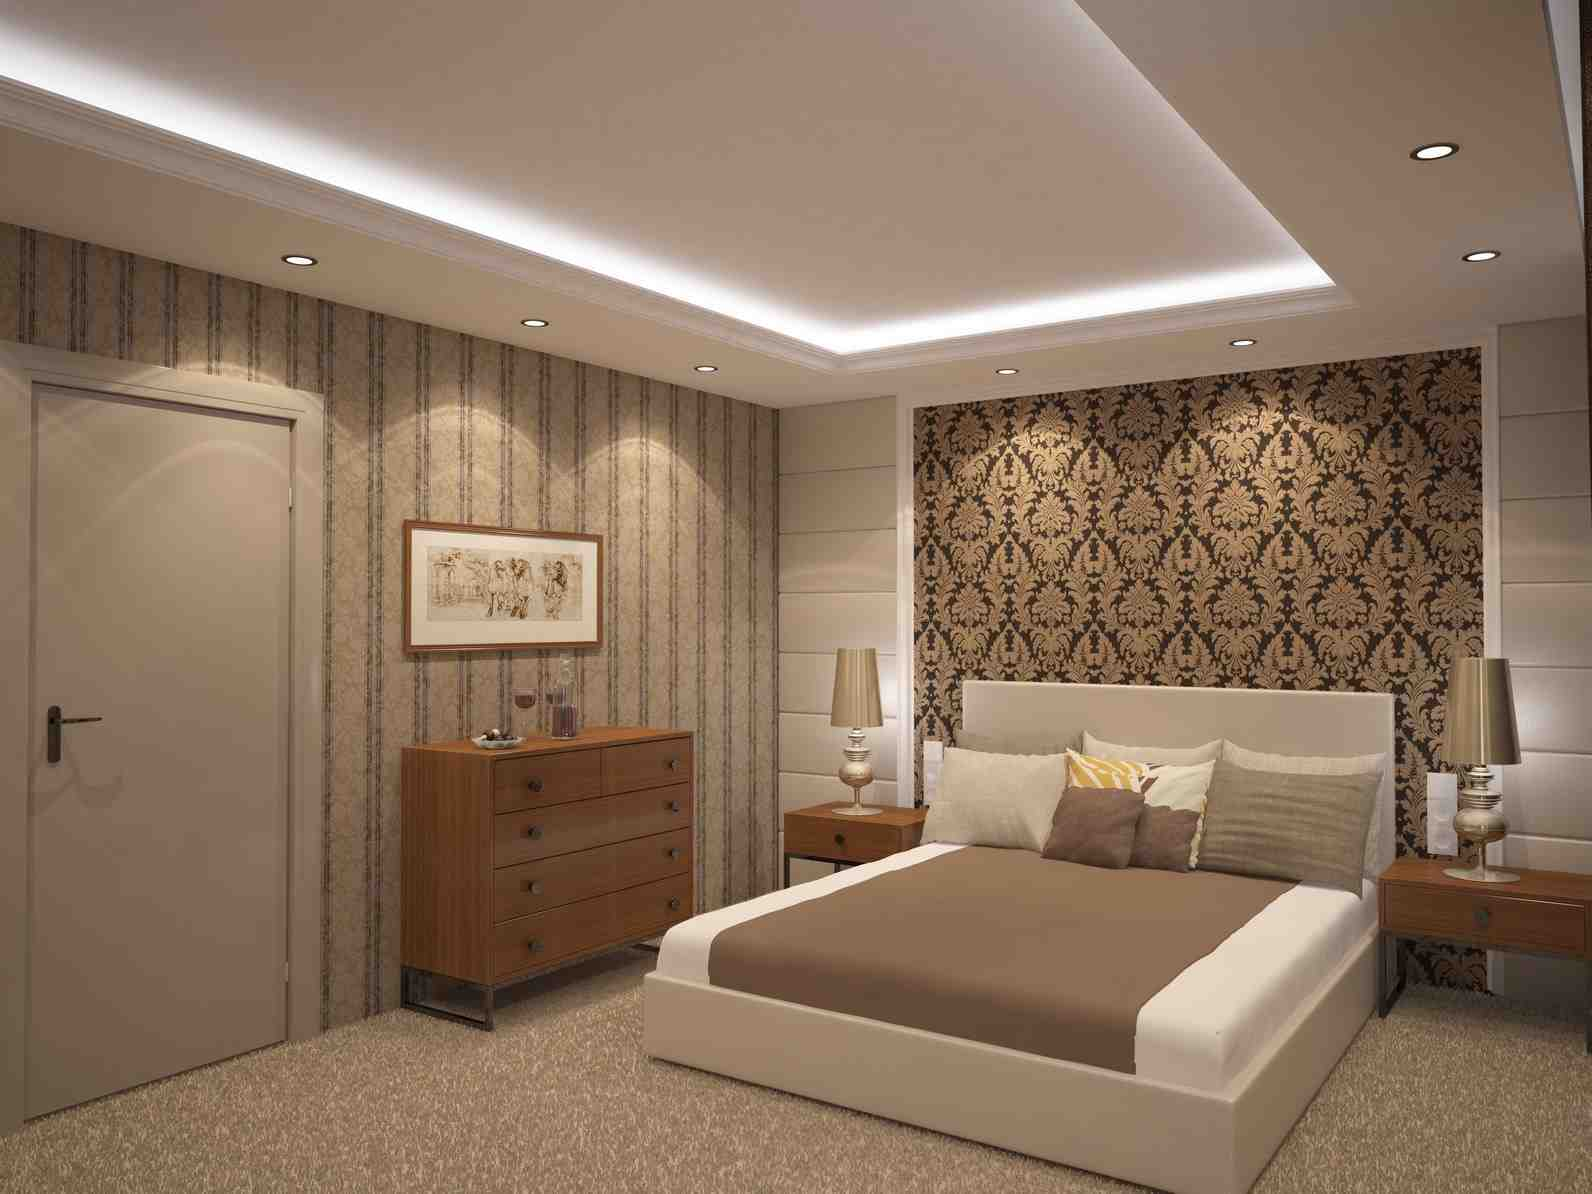 plafond faux plafond design et d coratif en pl tre. Black Bedroom Furniture Sets. Home Design Ideas